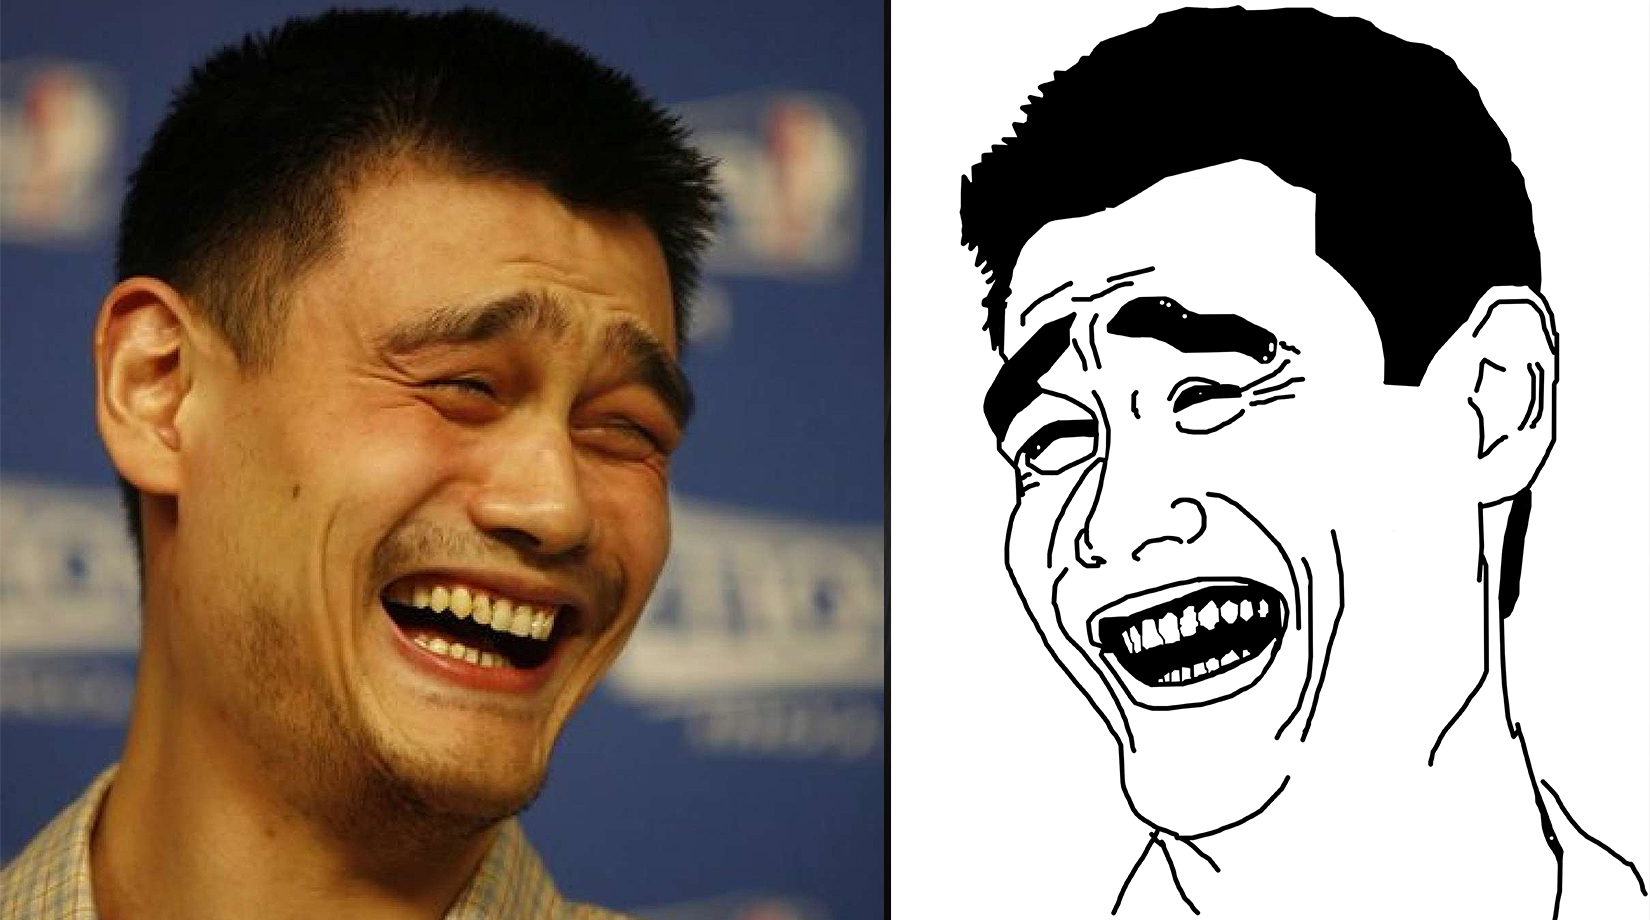 yao ming face disgusted - photo #23